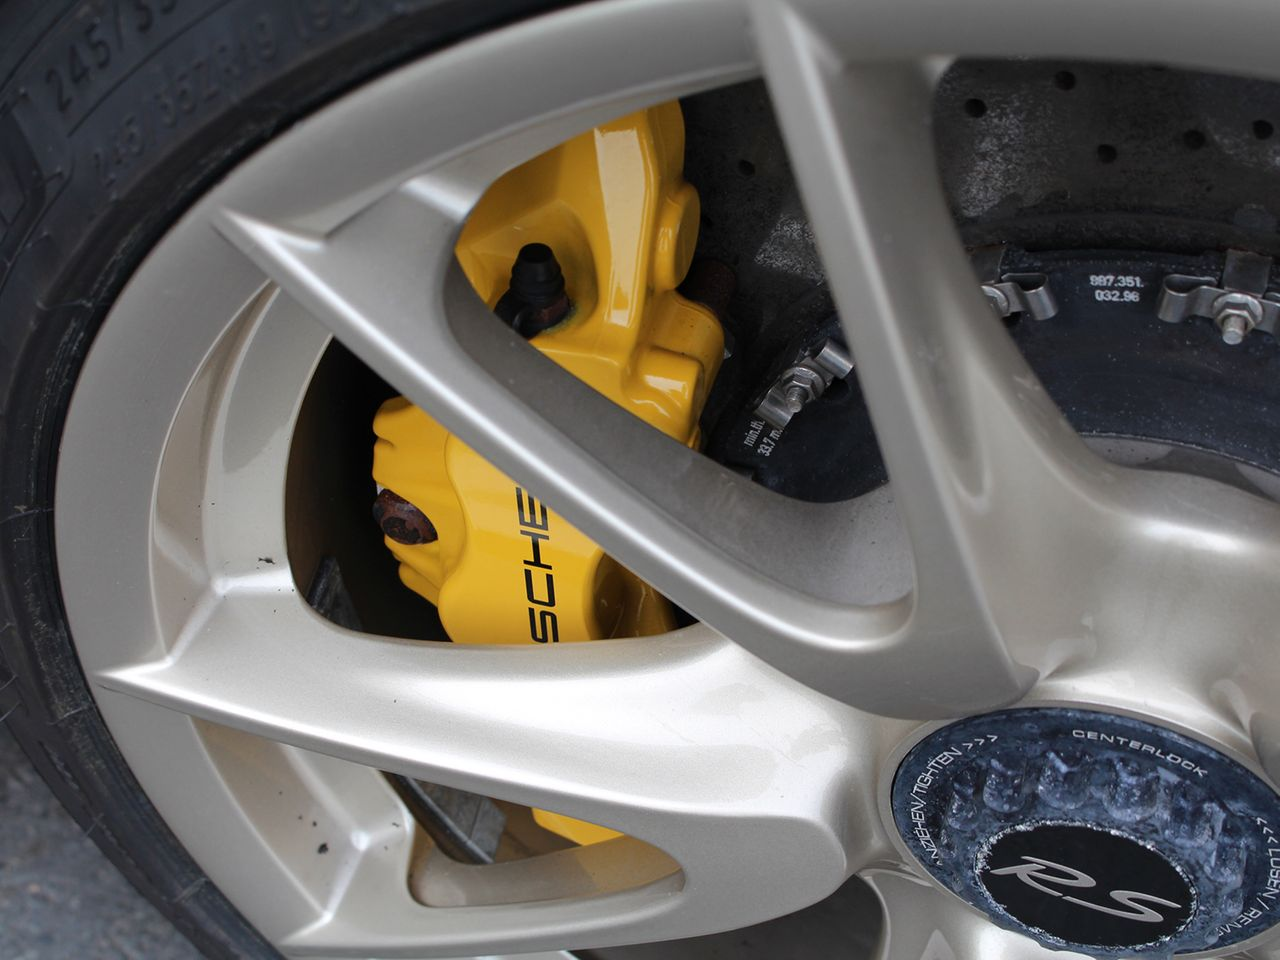 911 GT3 RS (3) image 27